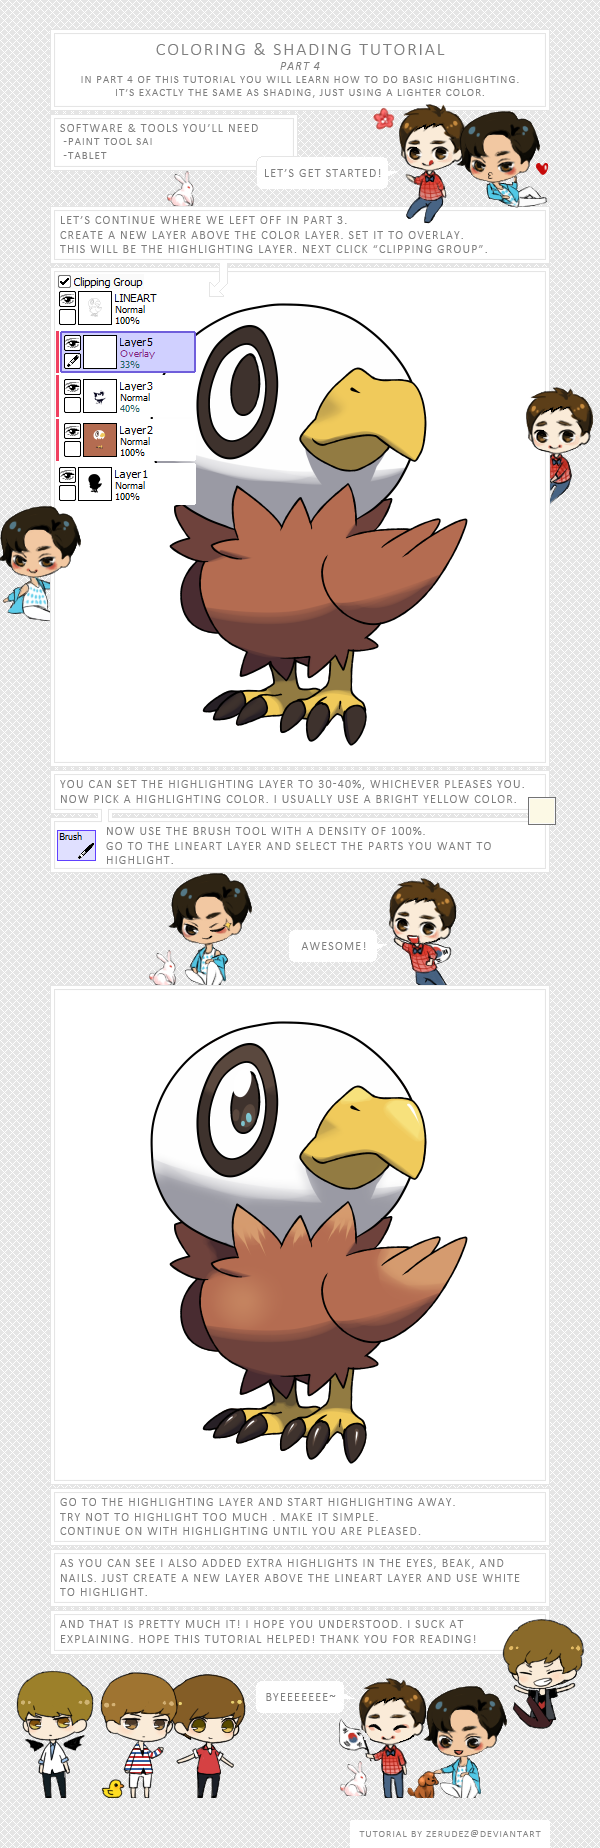 Fakemon Coloring and Shading Tutorial Part 4 by zerudez